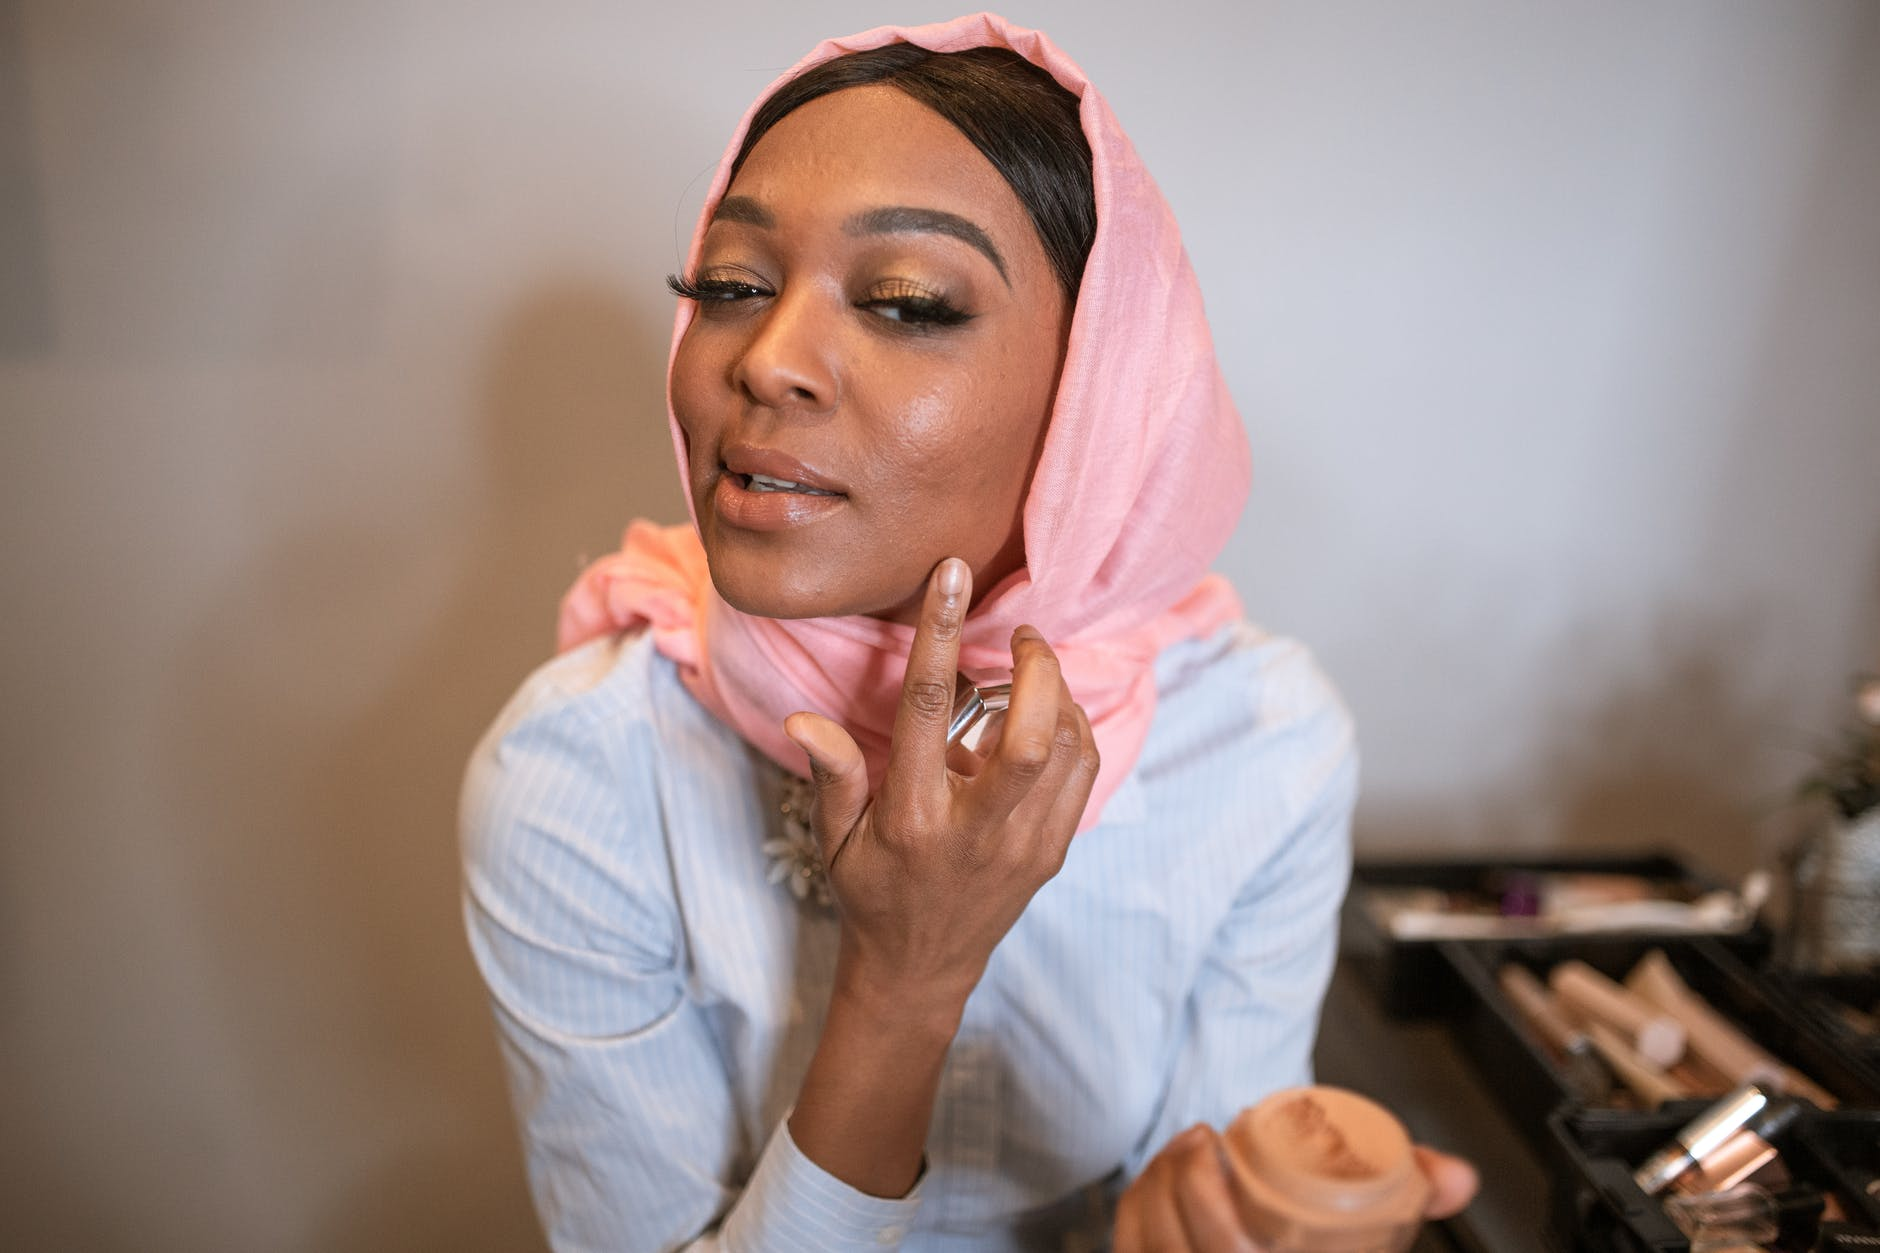 woman in white long sleeve shirt and pink hijab applying make up